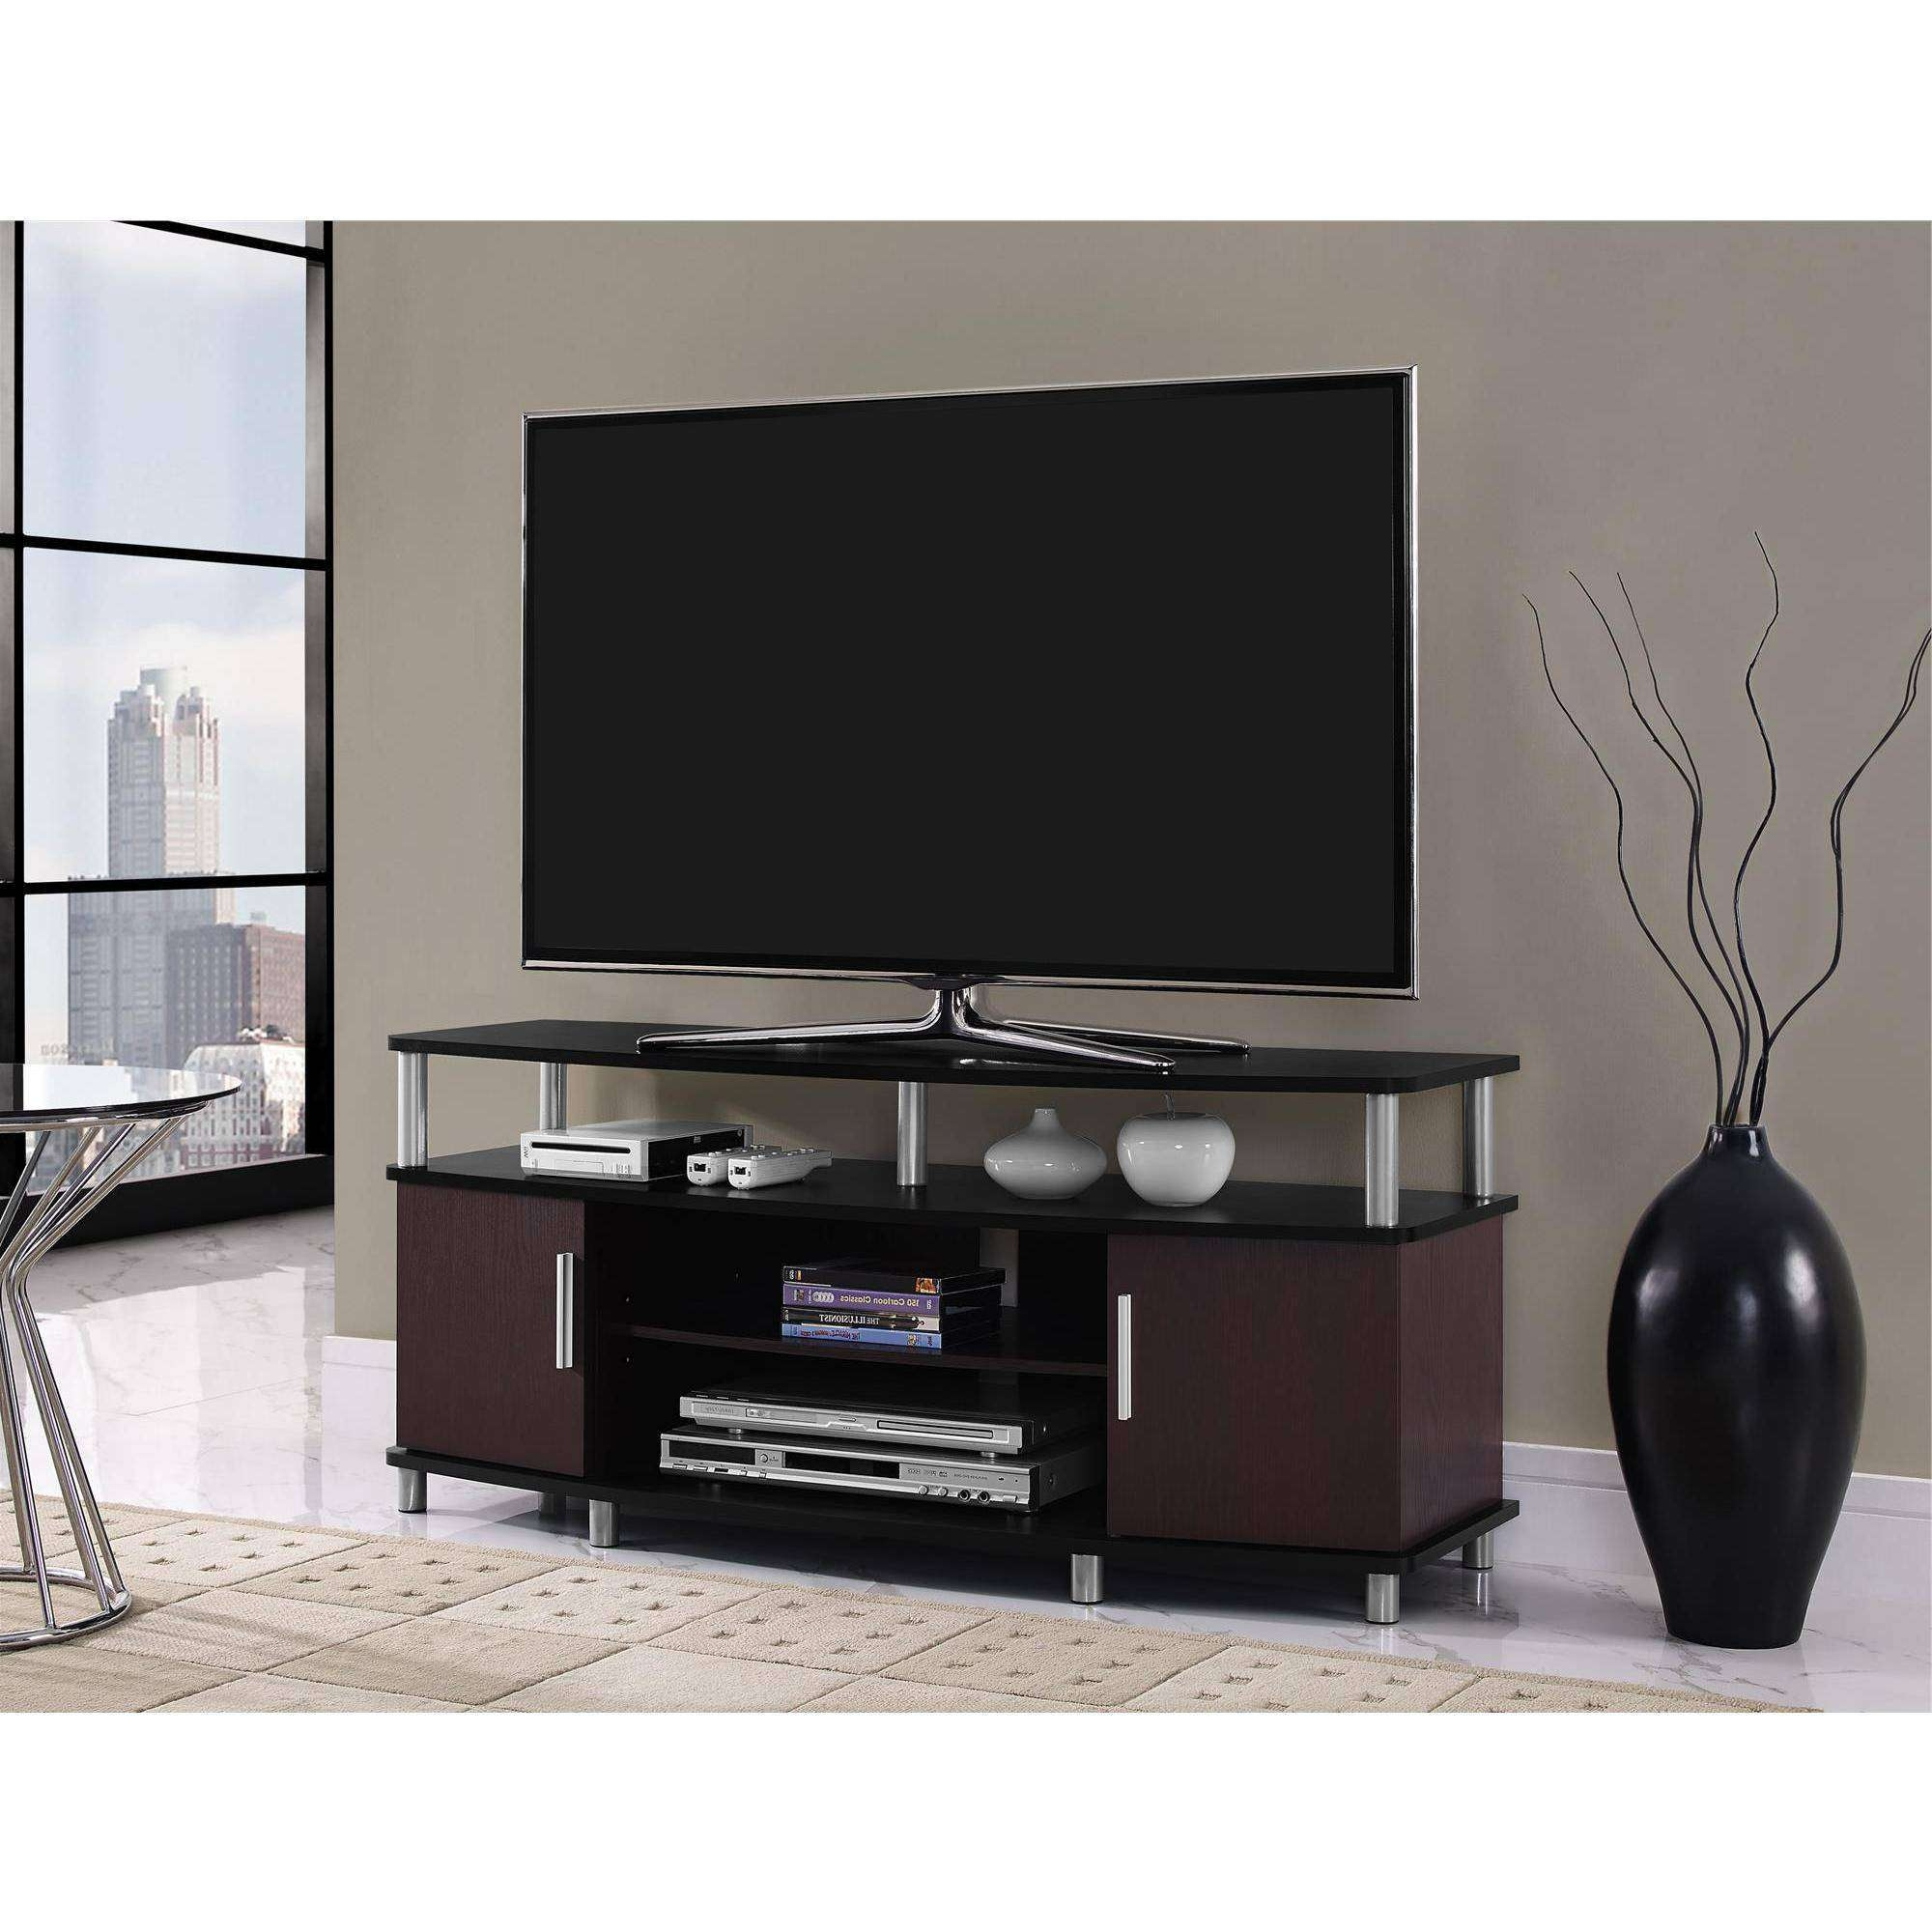 Tv : Contemporary Tv Unit Beautiful Trendy Tv Stands Tv Units In Trendy Tv Stands (View 7 of 15)